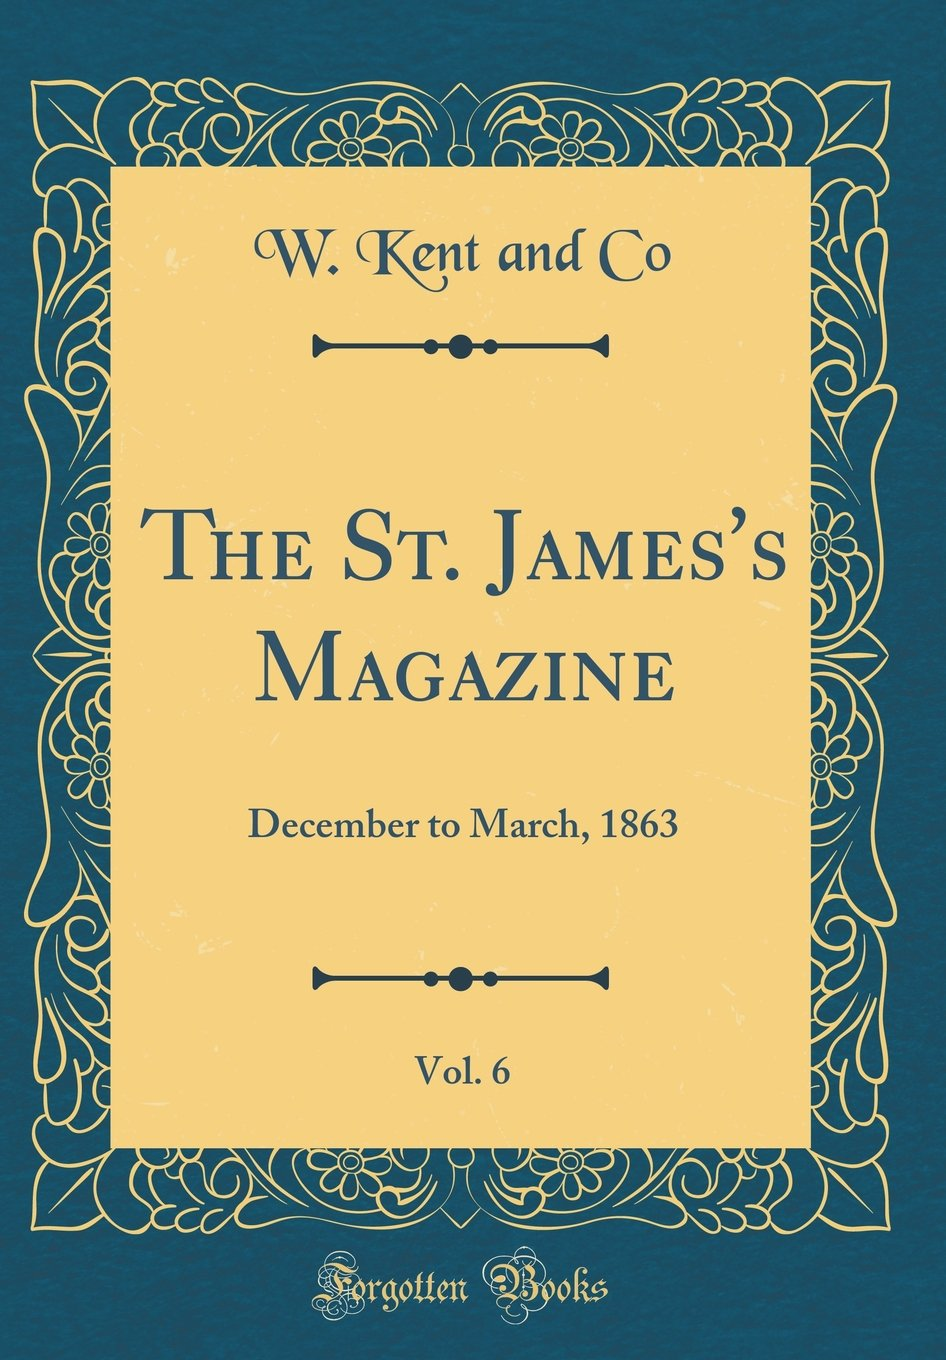 The St. James's Magazine, Vol. 6: December to March, 1863 (Classic Reprint) ePub fb2 book